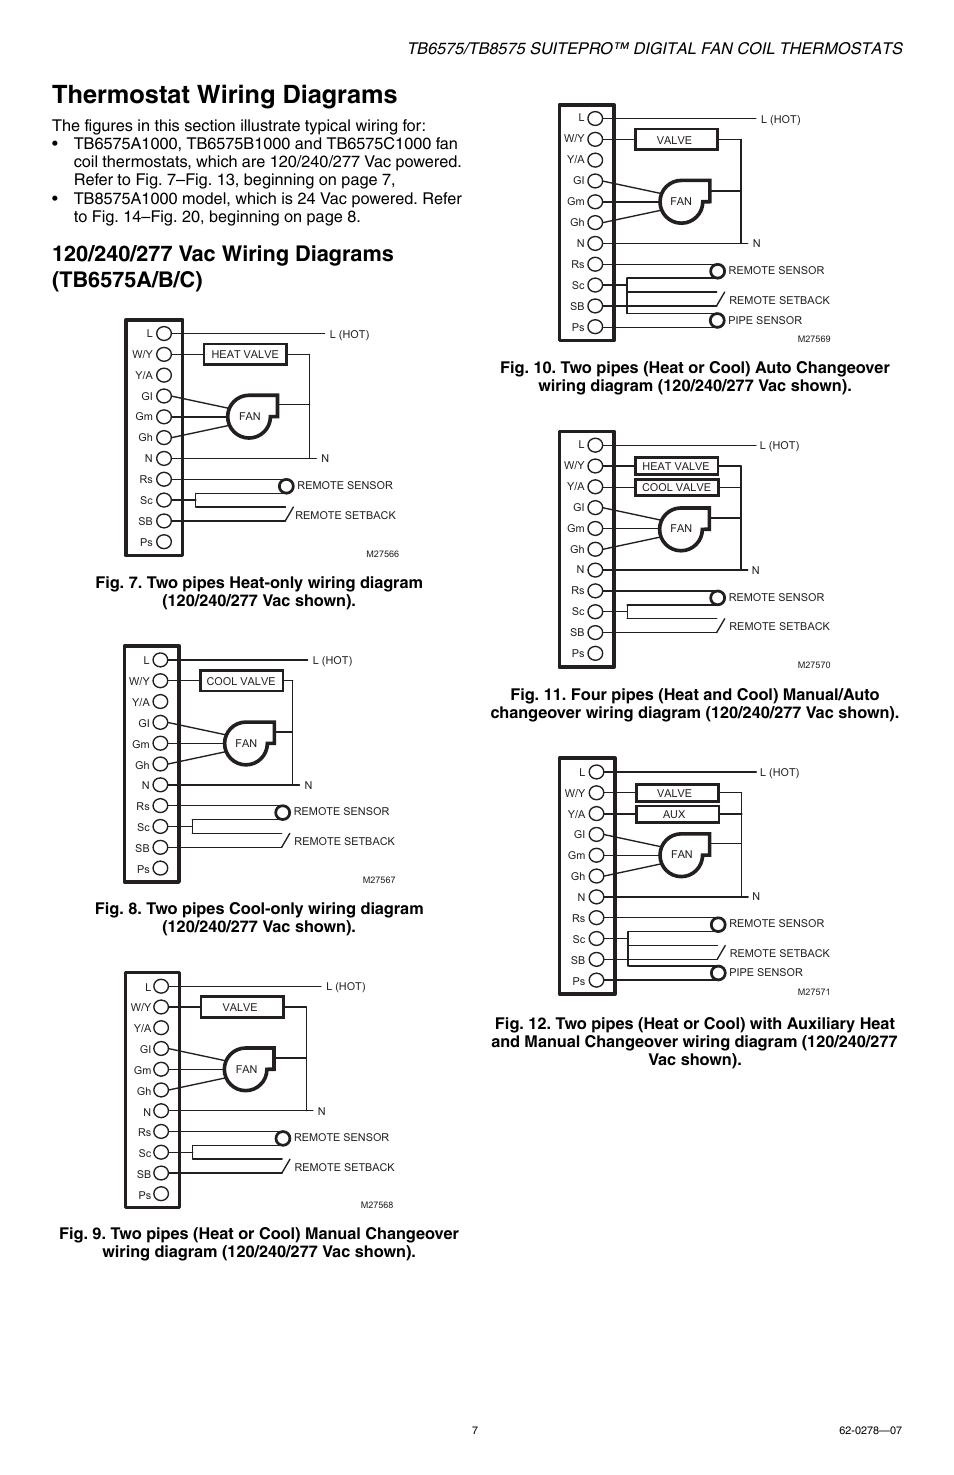 Thermostat Wiring Diagrams Honeywell Suitepro Tb8575 User Manual Changeover Diagram Page 7 20